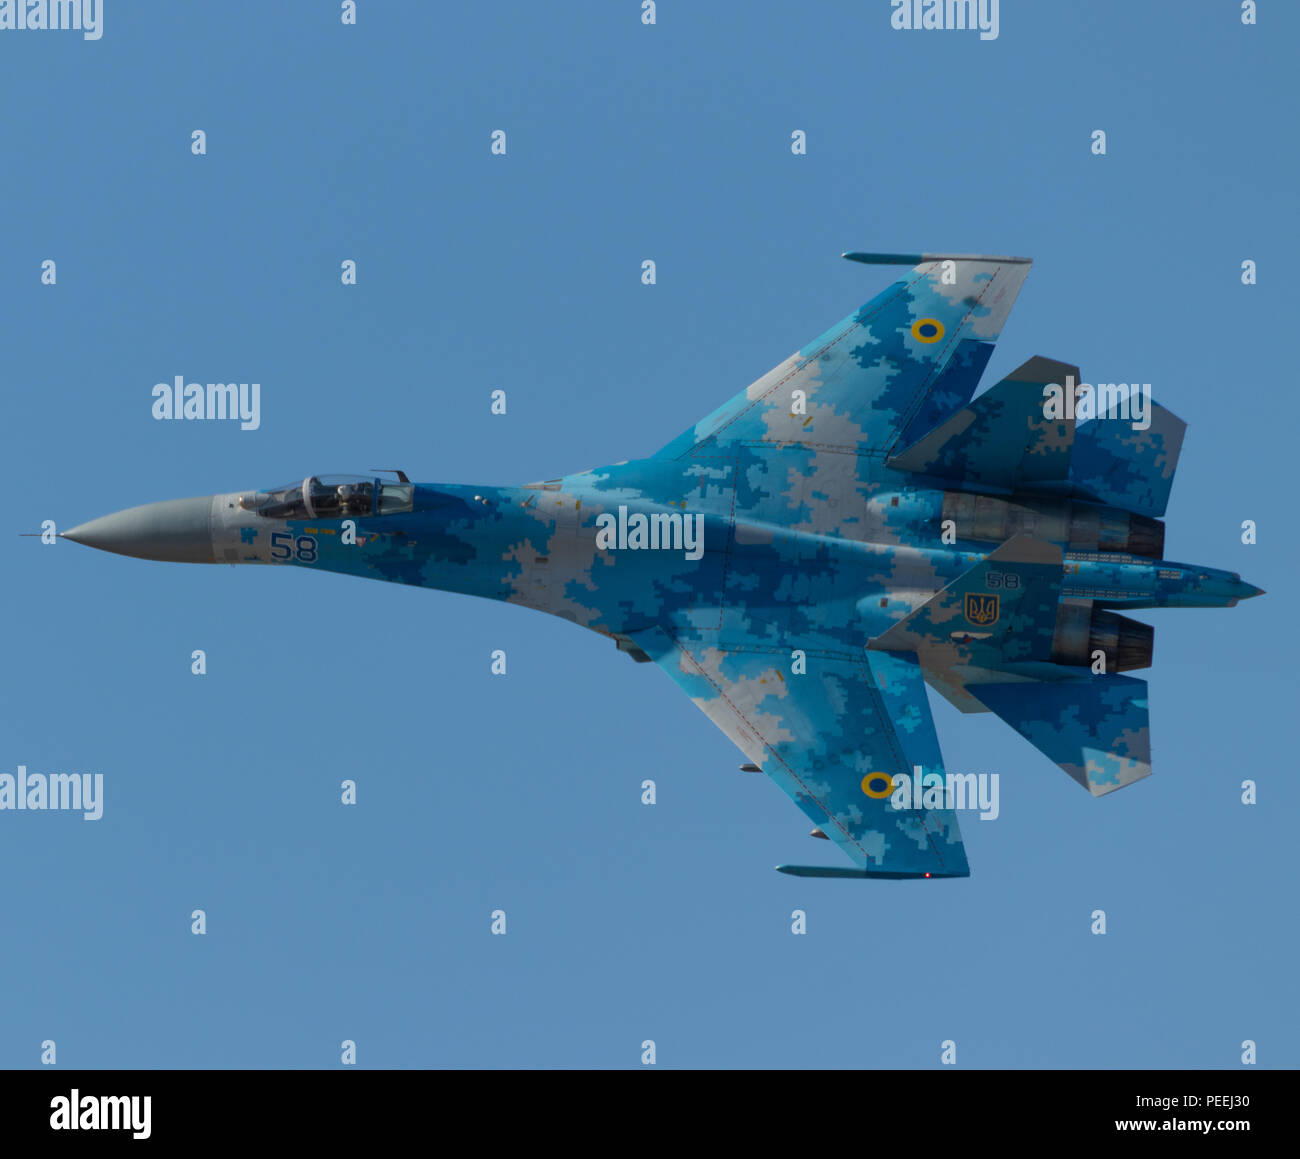 Ukranian Su-27 Flanker During its Airshow Display at Royal International Air Tattoo 2018 - Stock Image